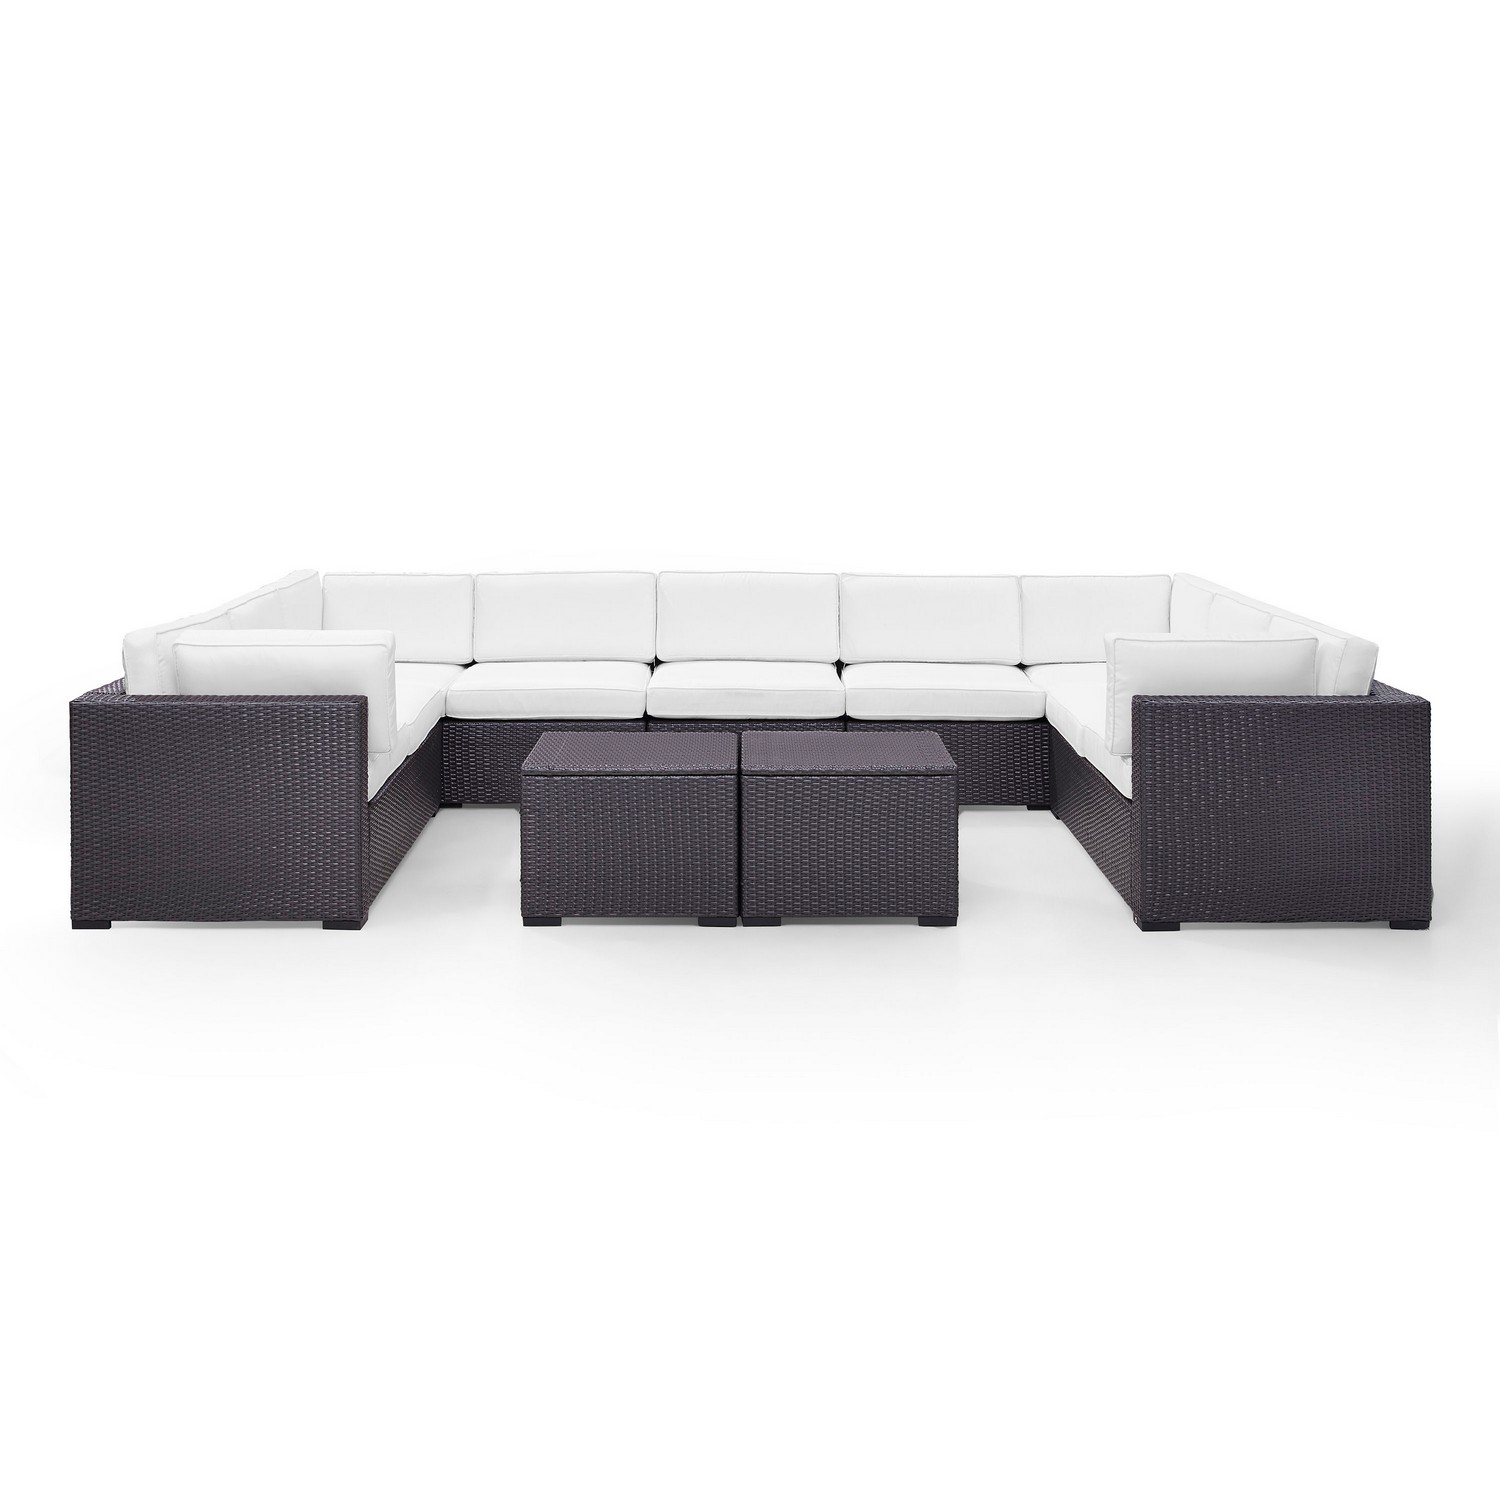 Crosley Biscayne 7-PC Outdoor Wicker Sectional Set - 4 Loveseats, Armless Chair, 2 Coffee Tables - White/Brown